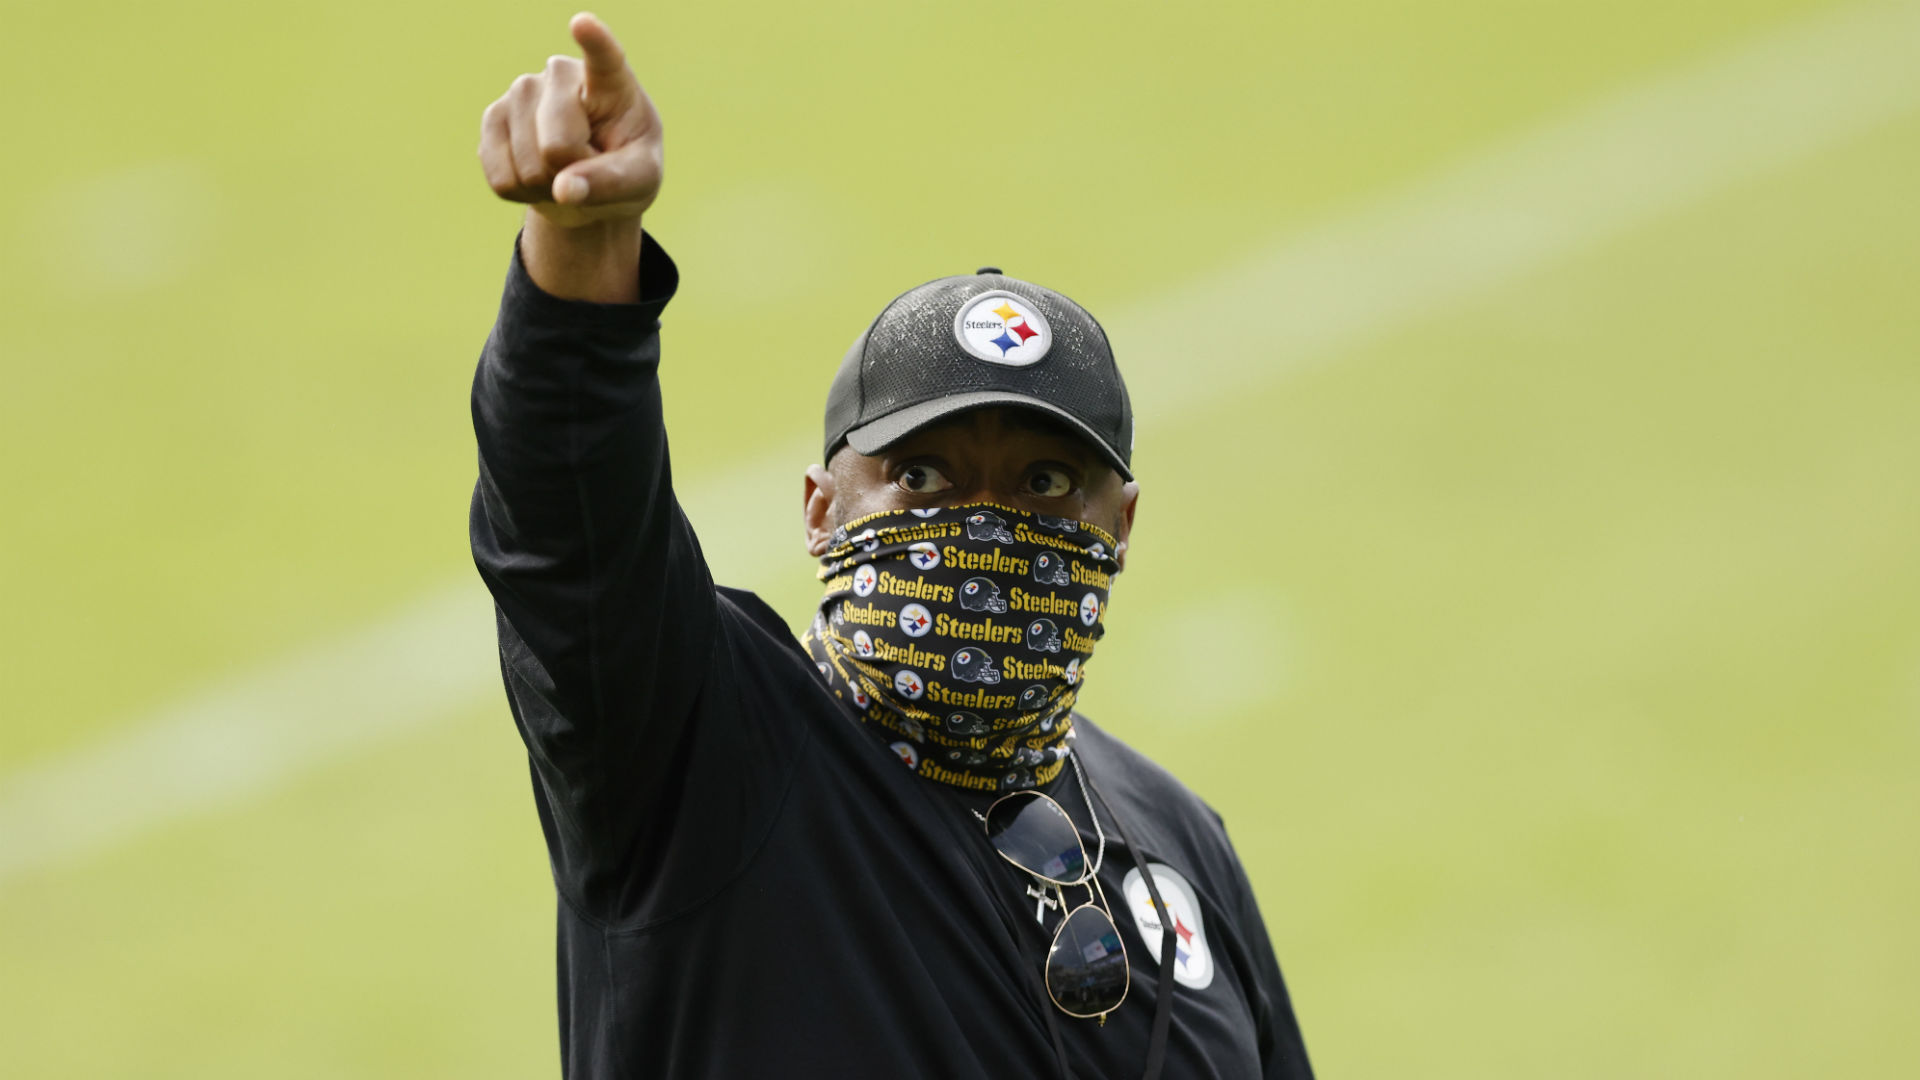 Why Steelers, Eagles are exempt from Pennsylvania's face mask mandate